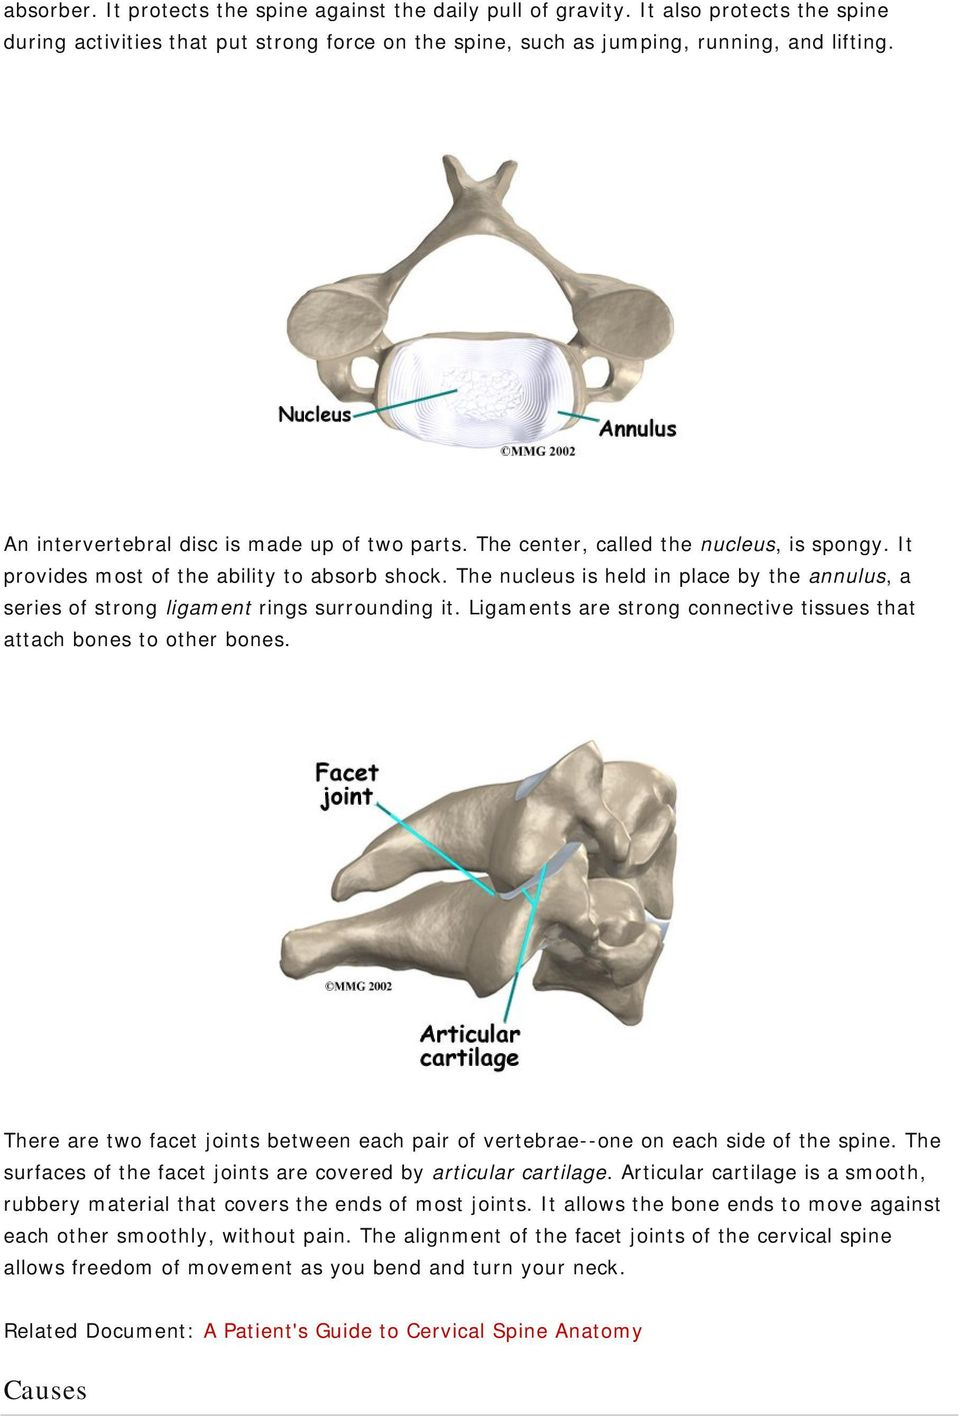 The nucleus is held in place by the annulus, a series of strong ligament rings surrounding it. Ligaments are strong connective tissues that attach bones to other bones.